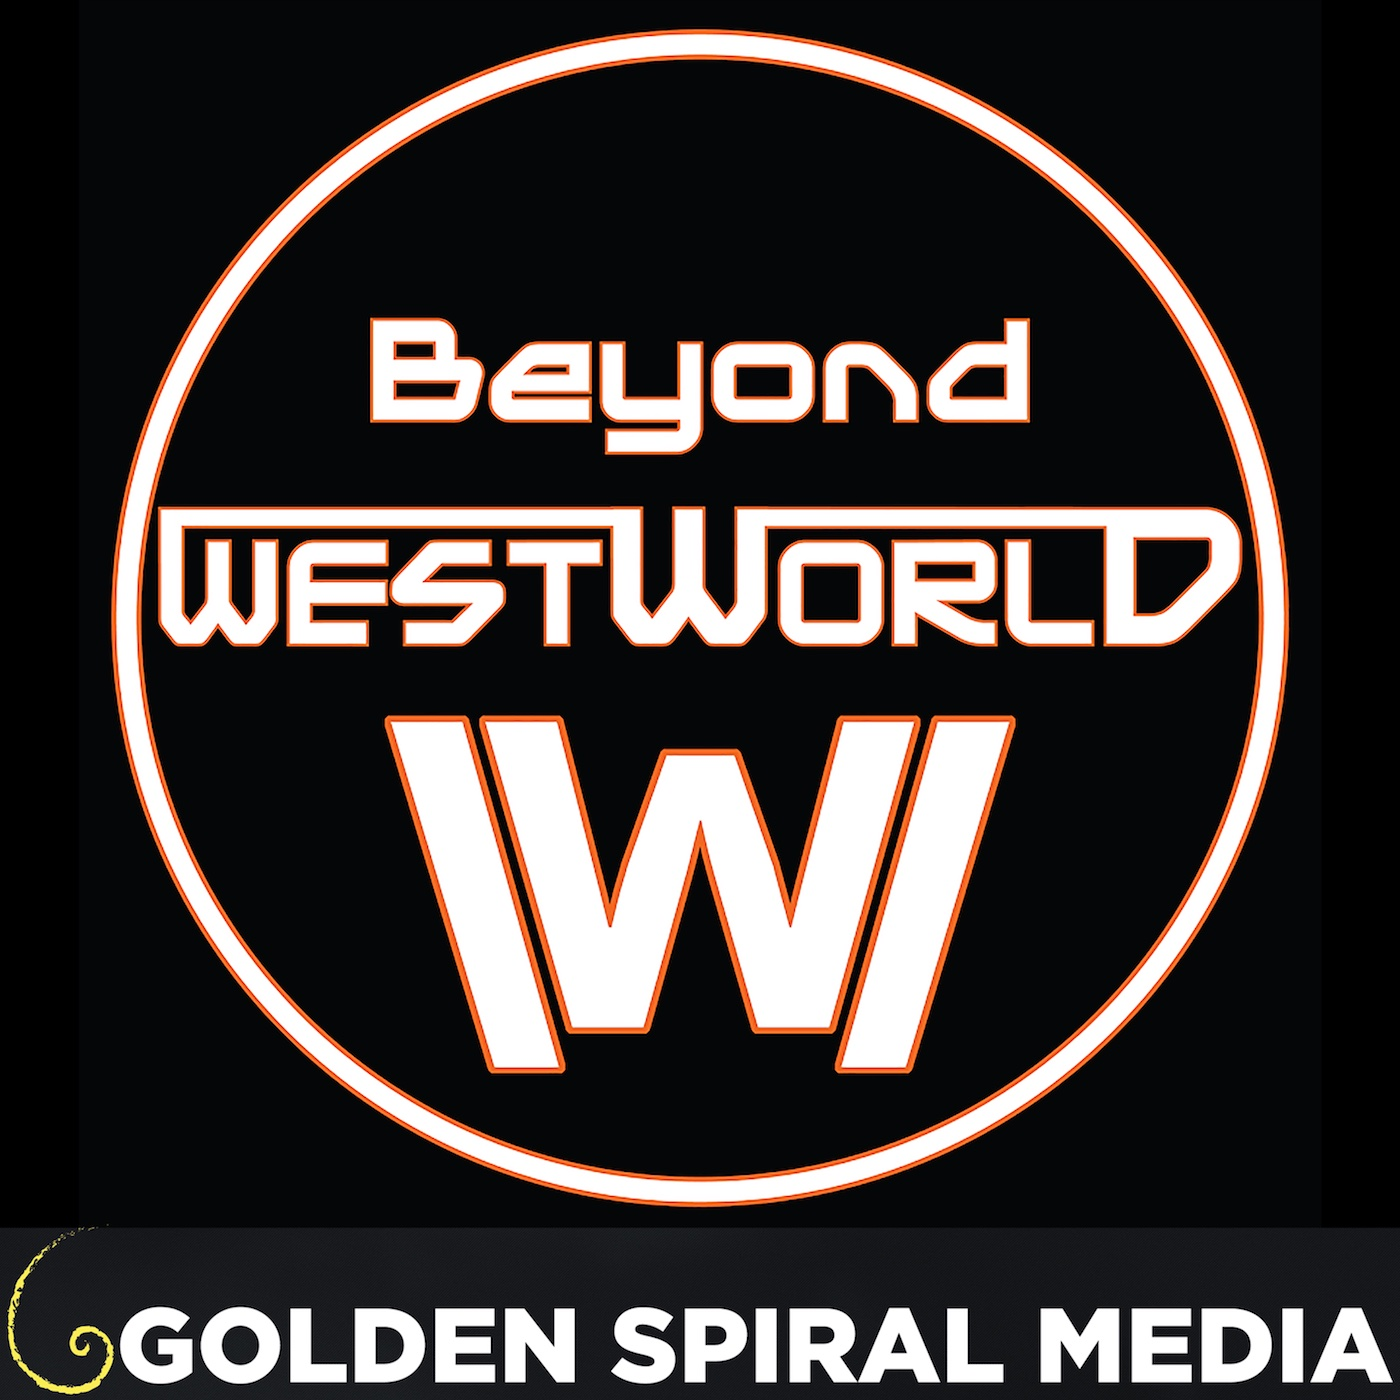 Beyond Westworld – An Aftershow companion to the HBO series Westworld